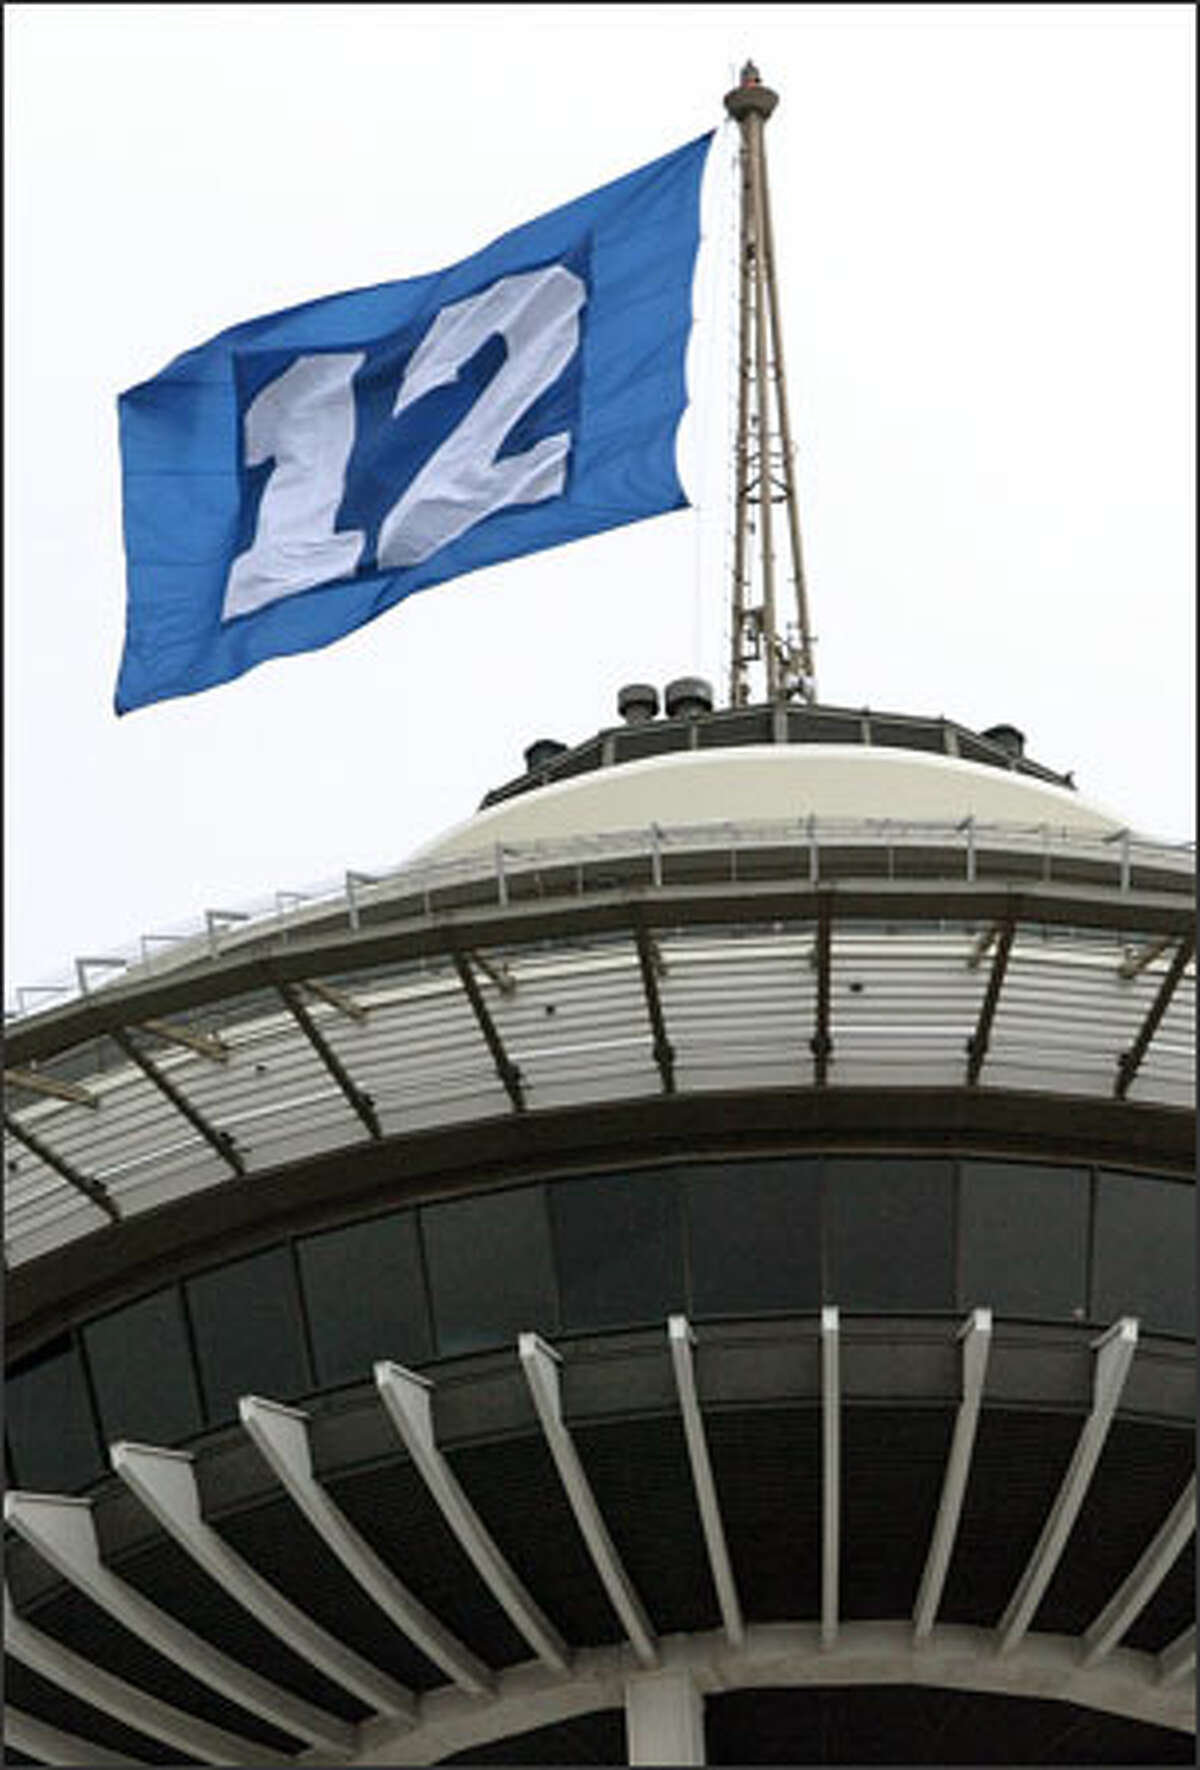 Battling 35mph winds atop the Space Needle, mountain climber Ed Viesturs hoists a Seahawks